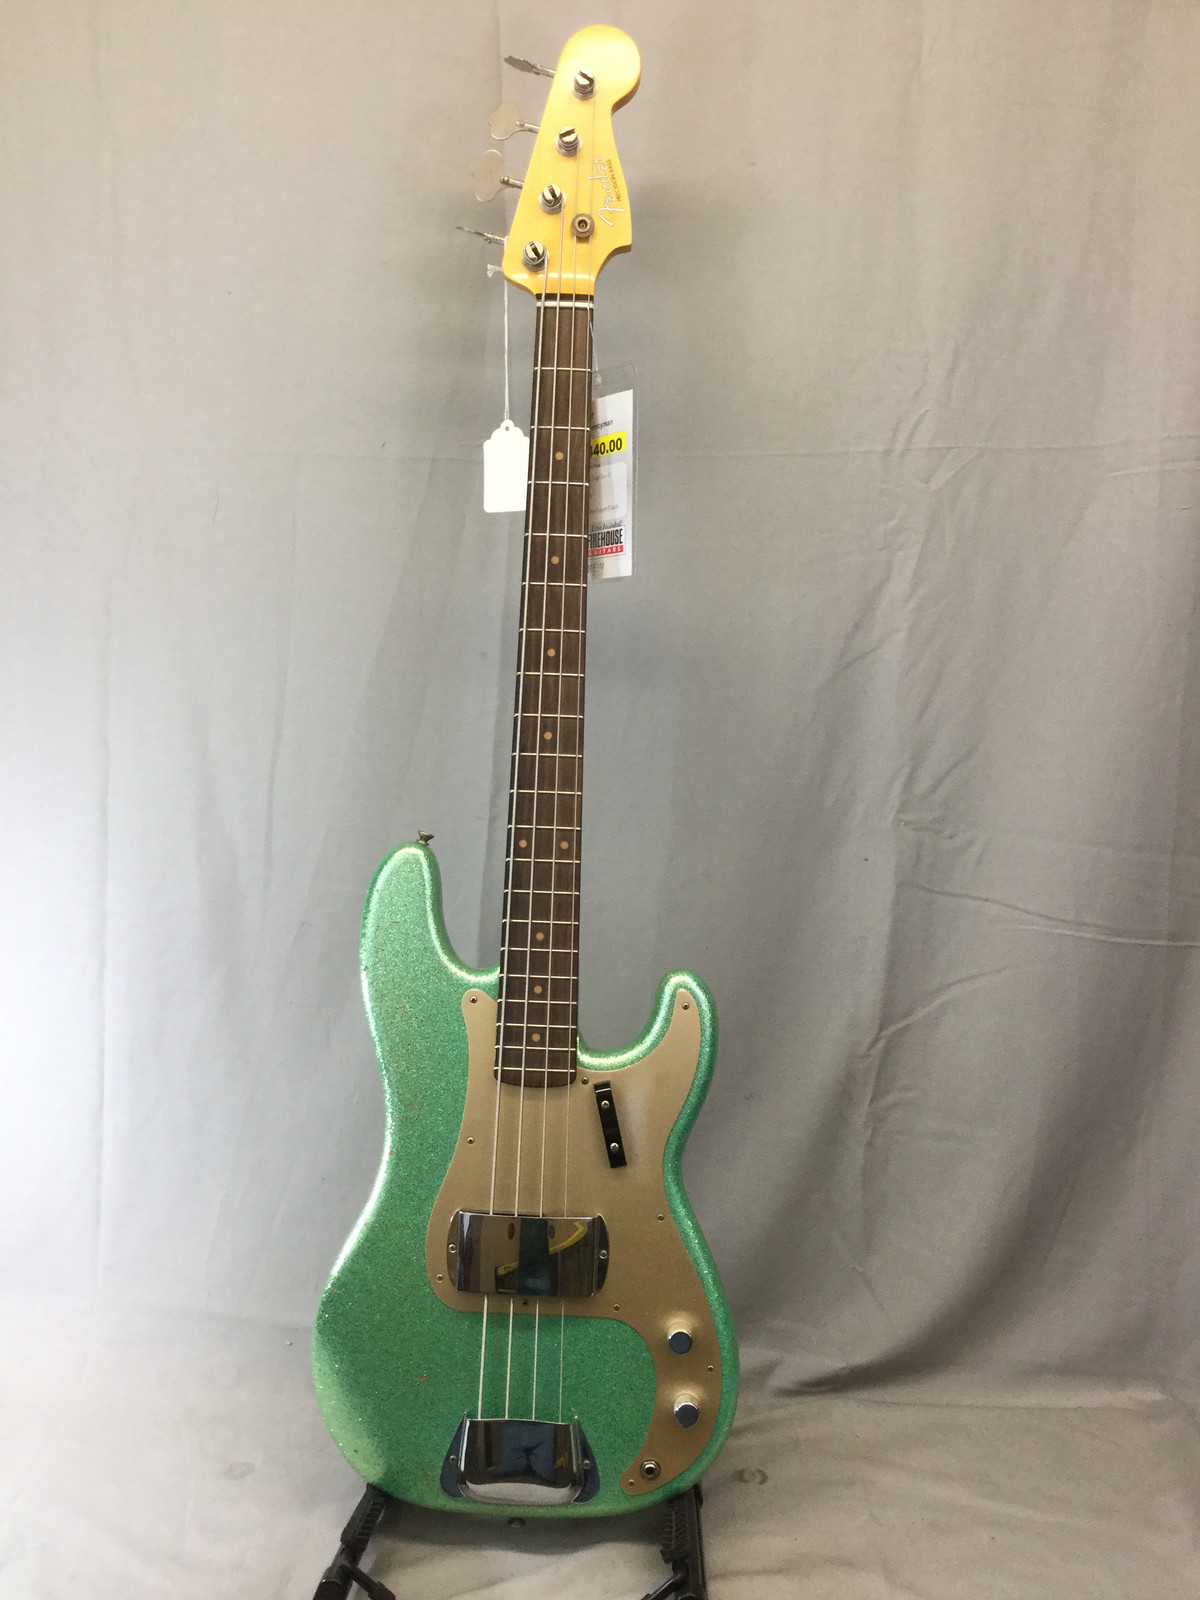 Firehouse Guitars Grandville Instrument Sales Lessons Guitar Kill Switch Wiring As Well Fender 1959 Journeyman Relic Precision Bass Custom Built Summer Event Limited Edition Aged